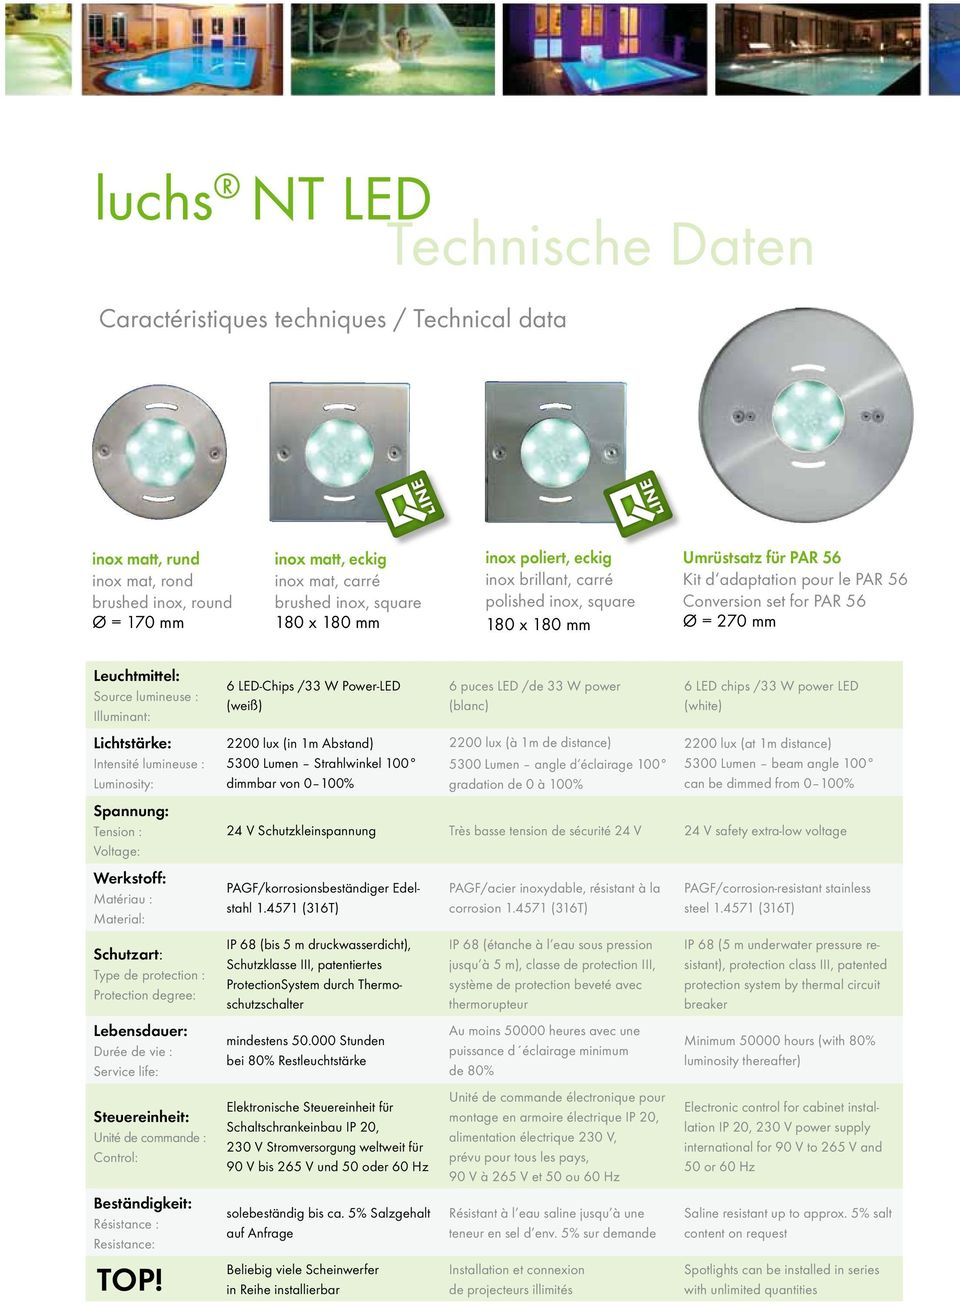 lumineuse : Illuminant: Lichtstärke: Intensité lumineuse : Luminosity: 6 LED-Chips /33 W Power-LED (weiß) 6 puces LED /de 33 W power (blanc) 6 LED chips /33 W power LED (white) 2200 lux (in 1m